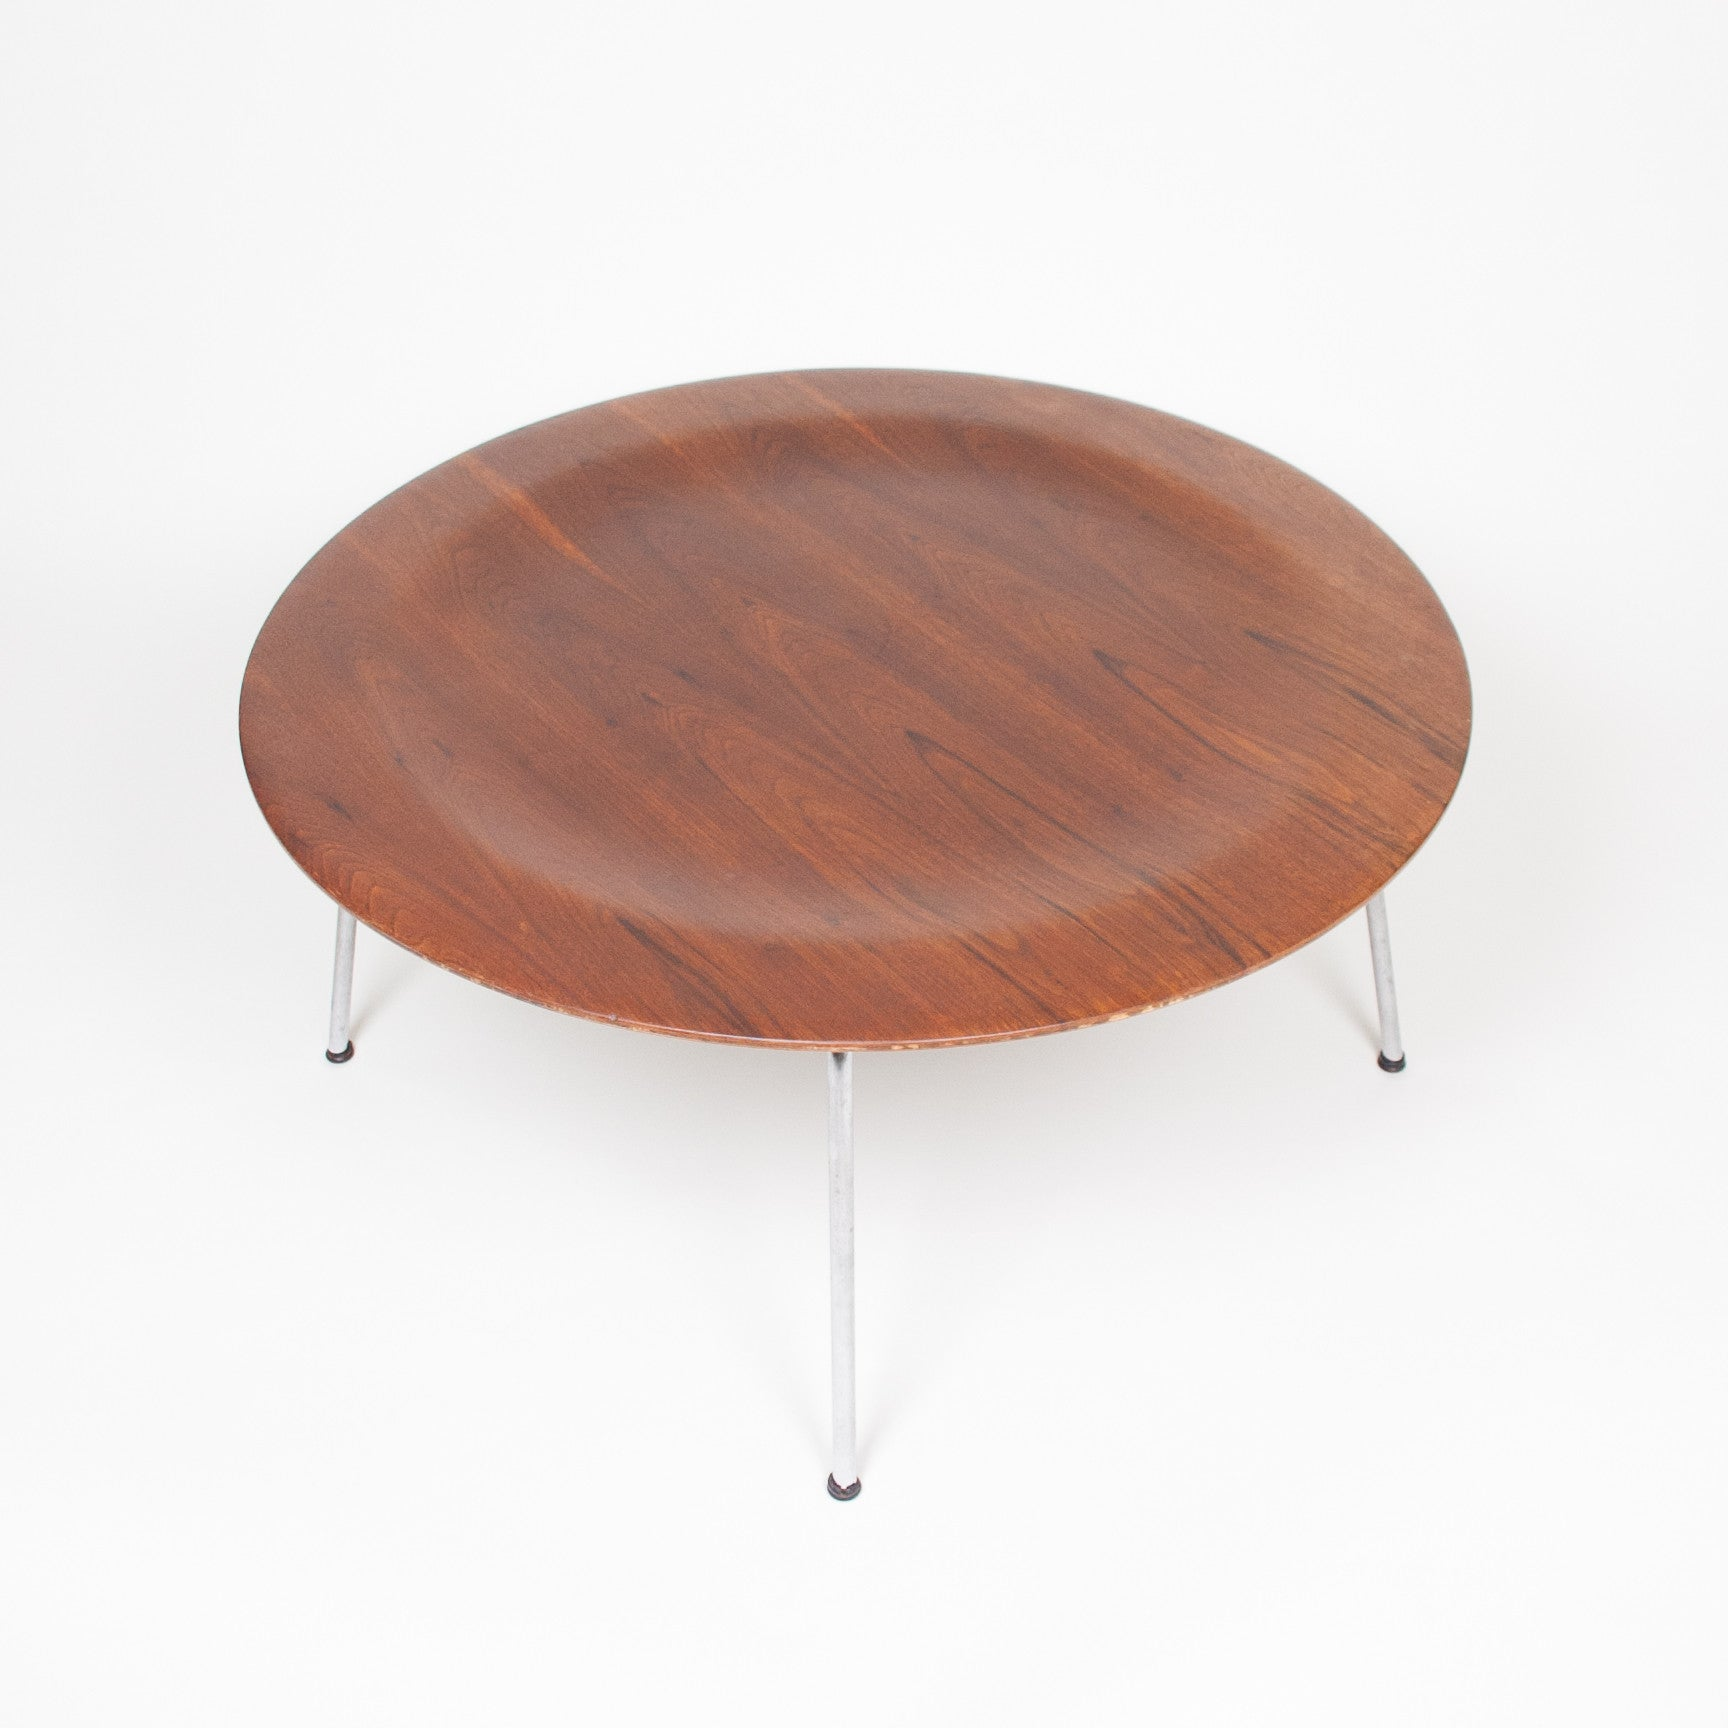 Eames Evans Herman Miller 1947 CTM Coffee Table Museum Quality – D